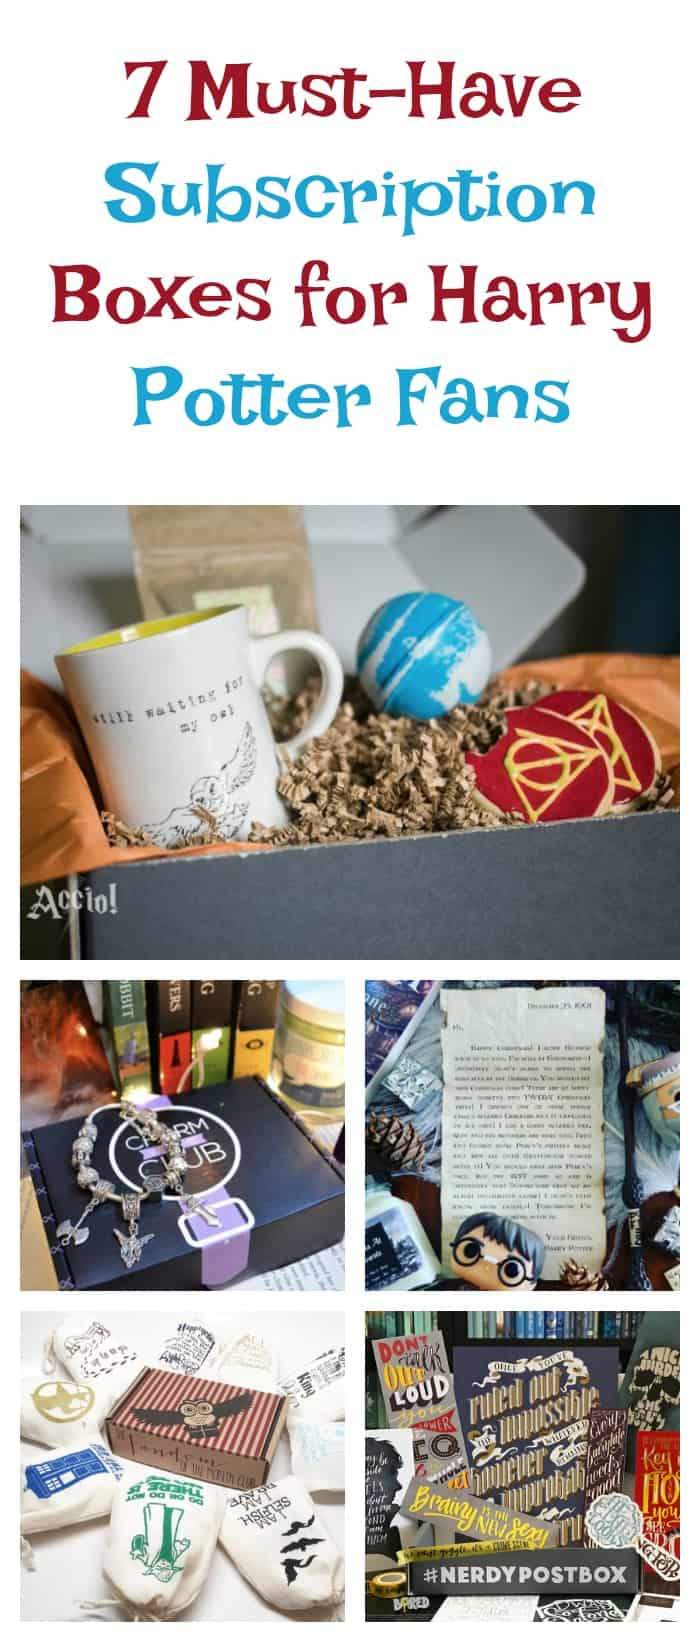 Need the perfect gift idea for the Harry Potter fan in your life? Check out these 7 perfect subscription boxes! I want them all!